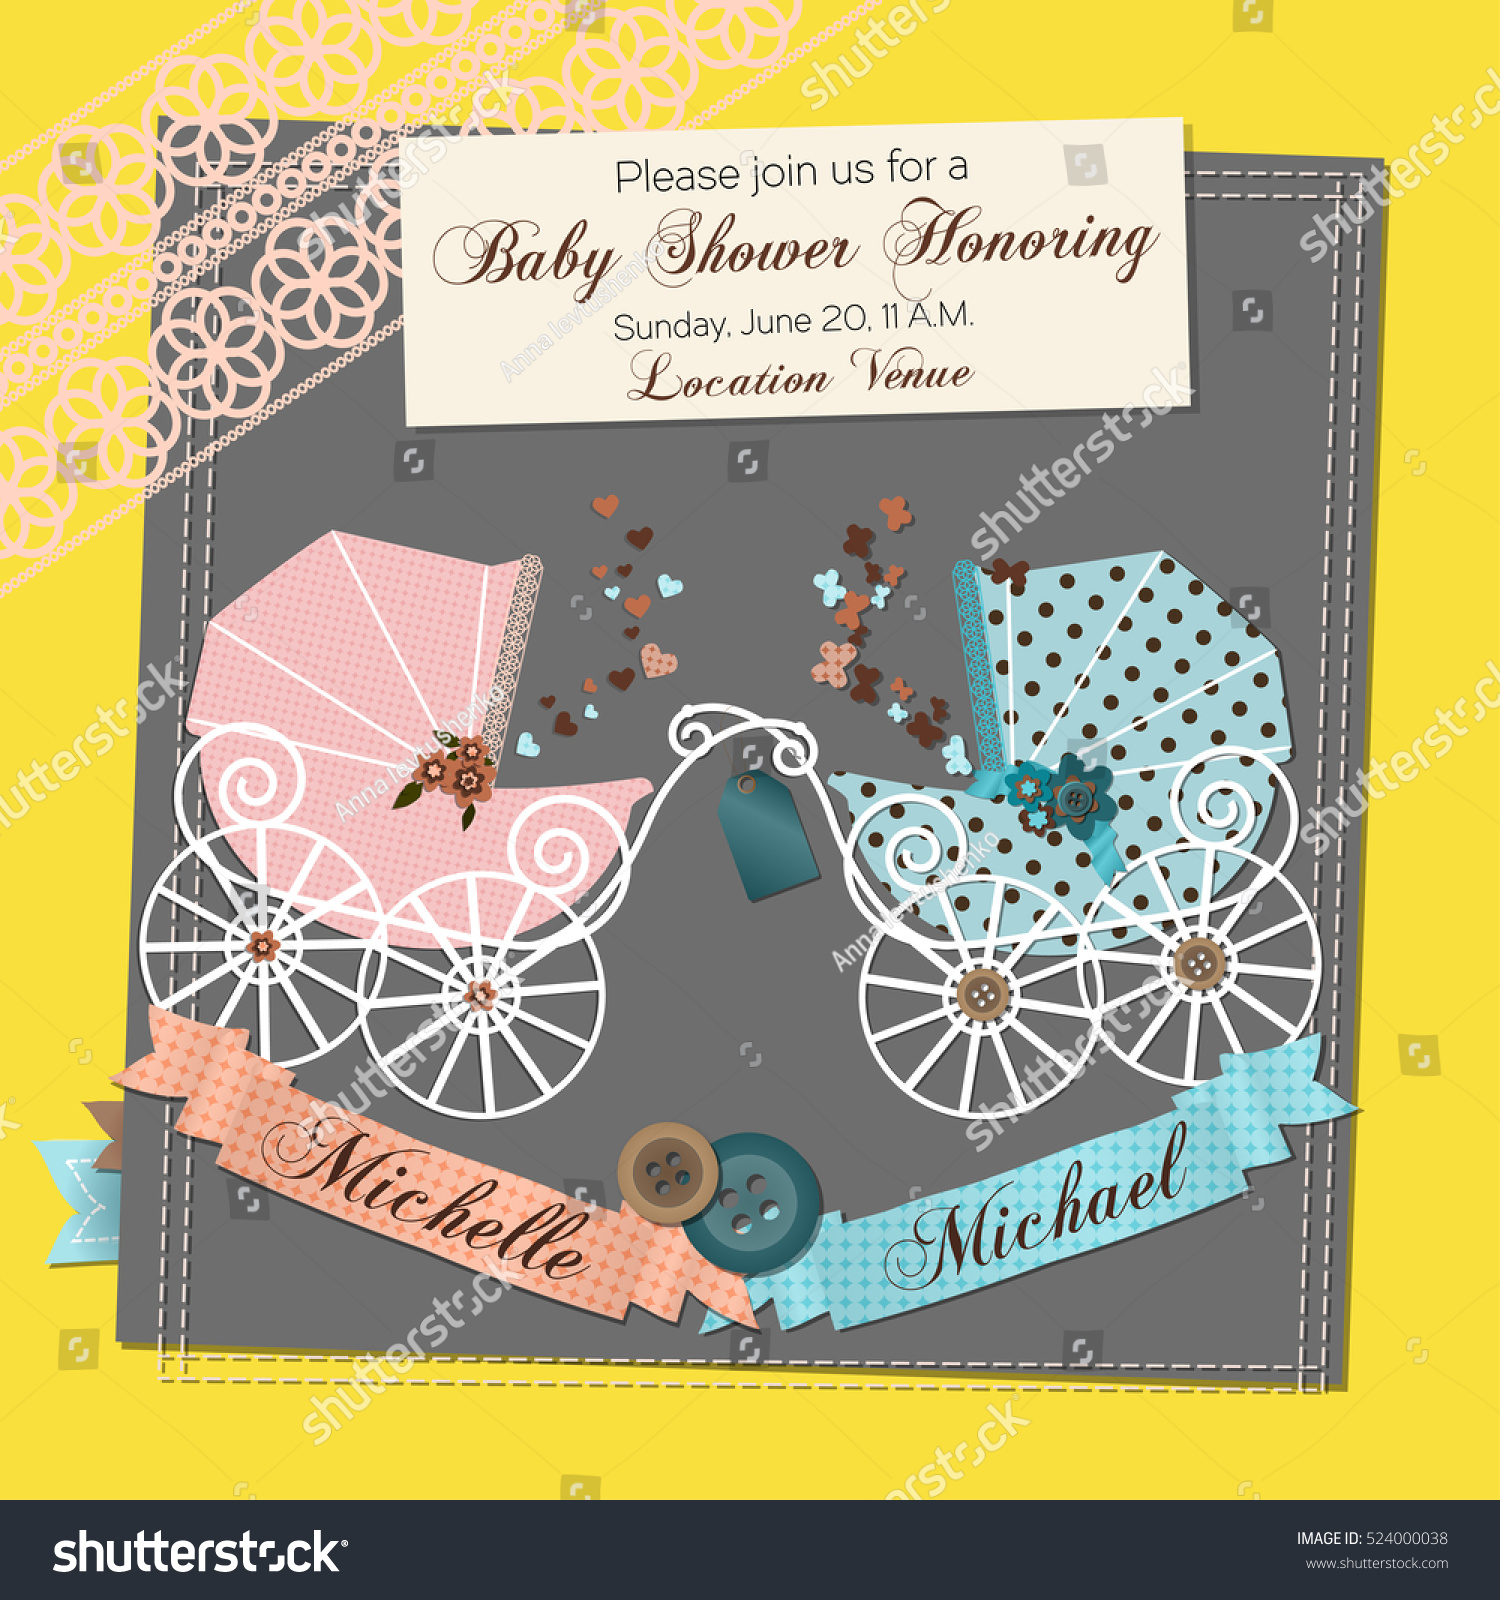 Twins Baby Shower Invitation Template Vector Stock Royalty